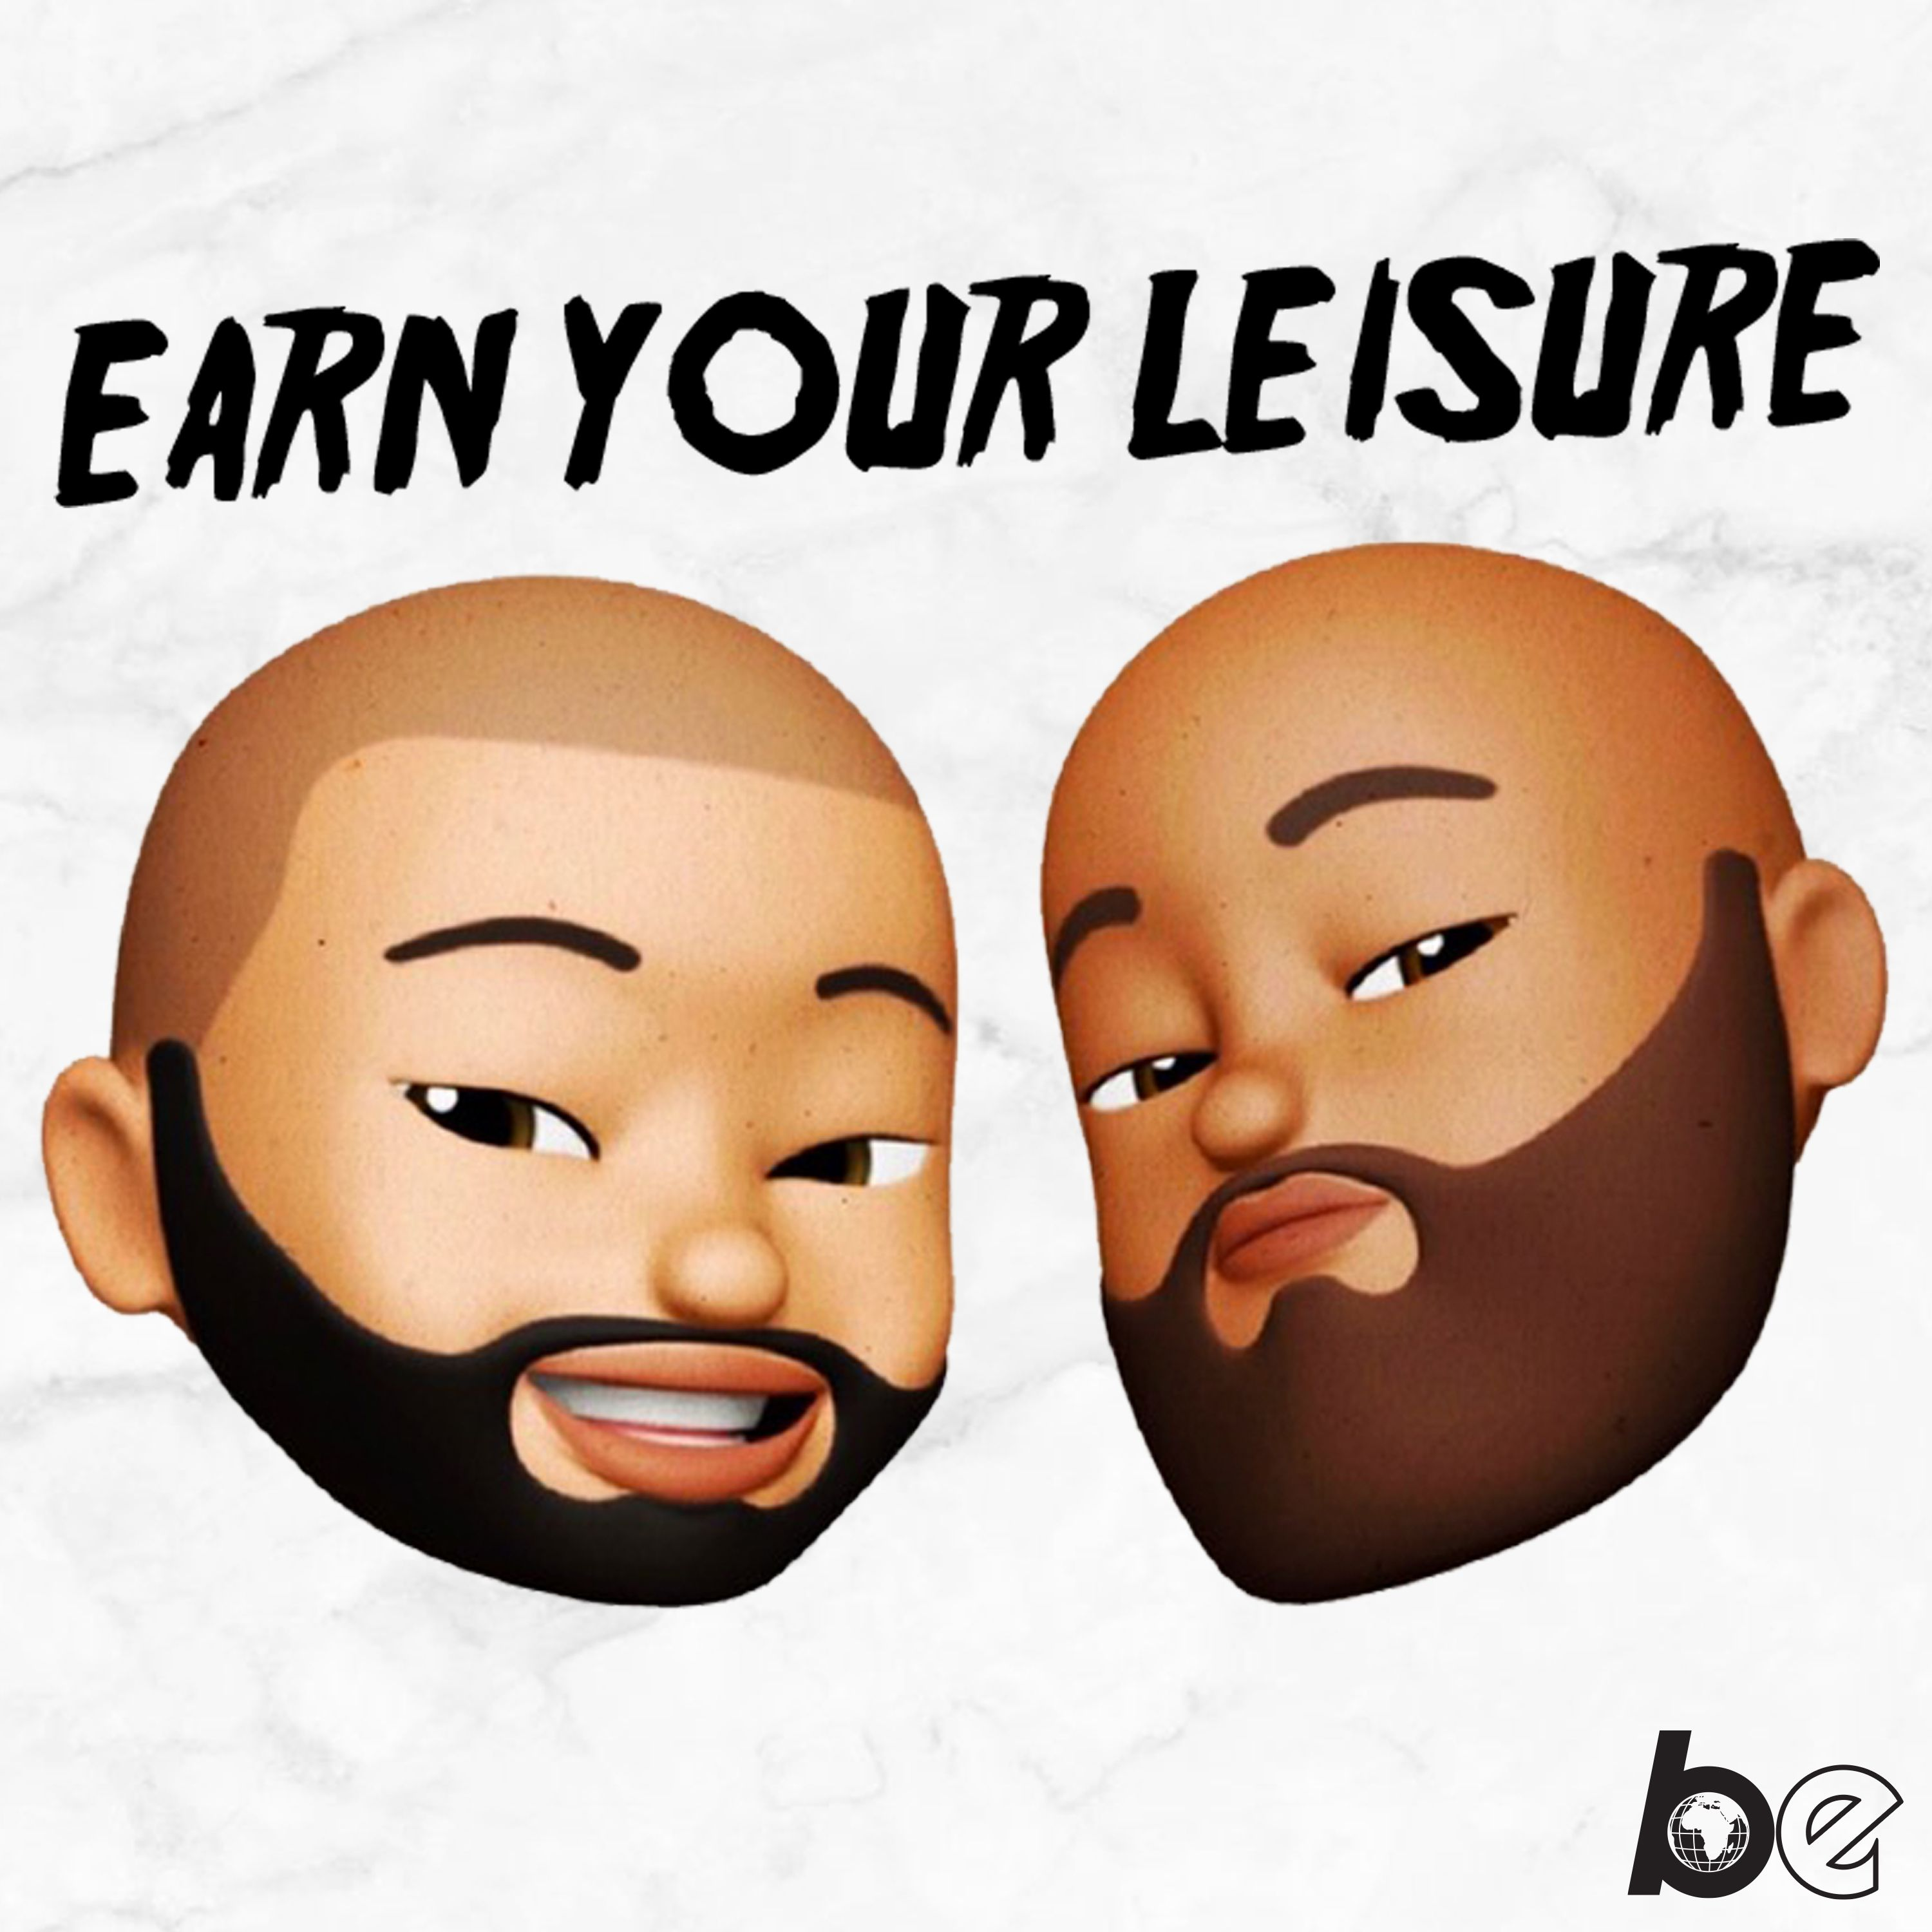 Podcast Artwork for Earn Your Leisure